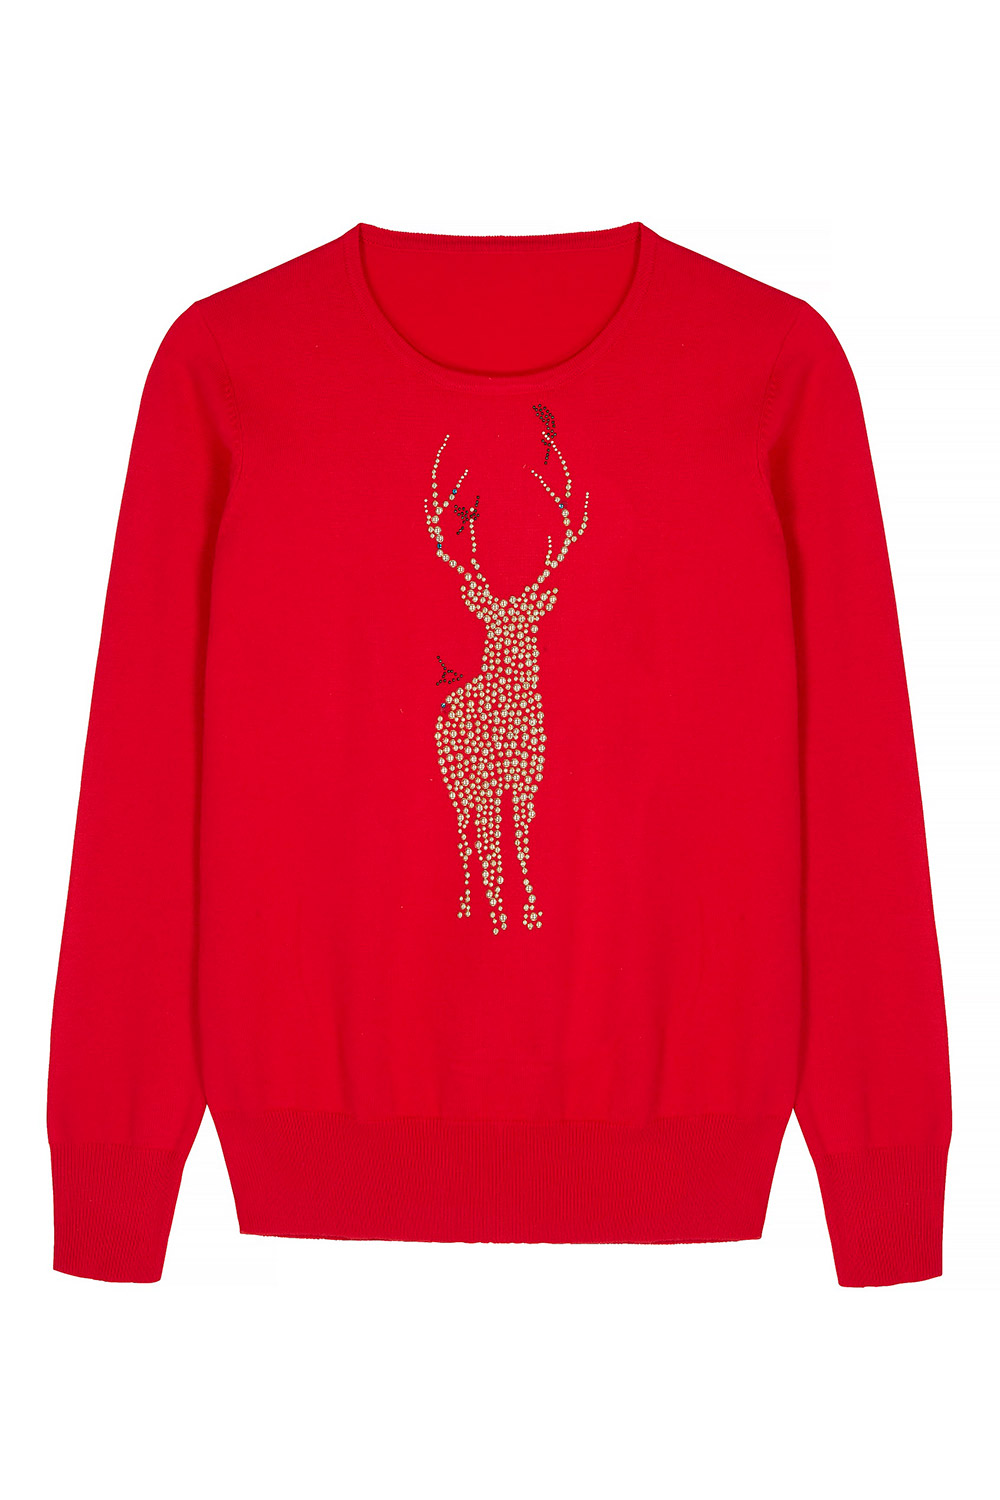 Christmas Jumper Day 2019 Save The Children.Where To Buy Christmas Jumpers That Are Actually Chic Af